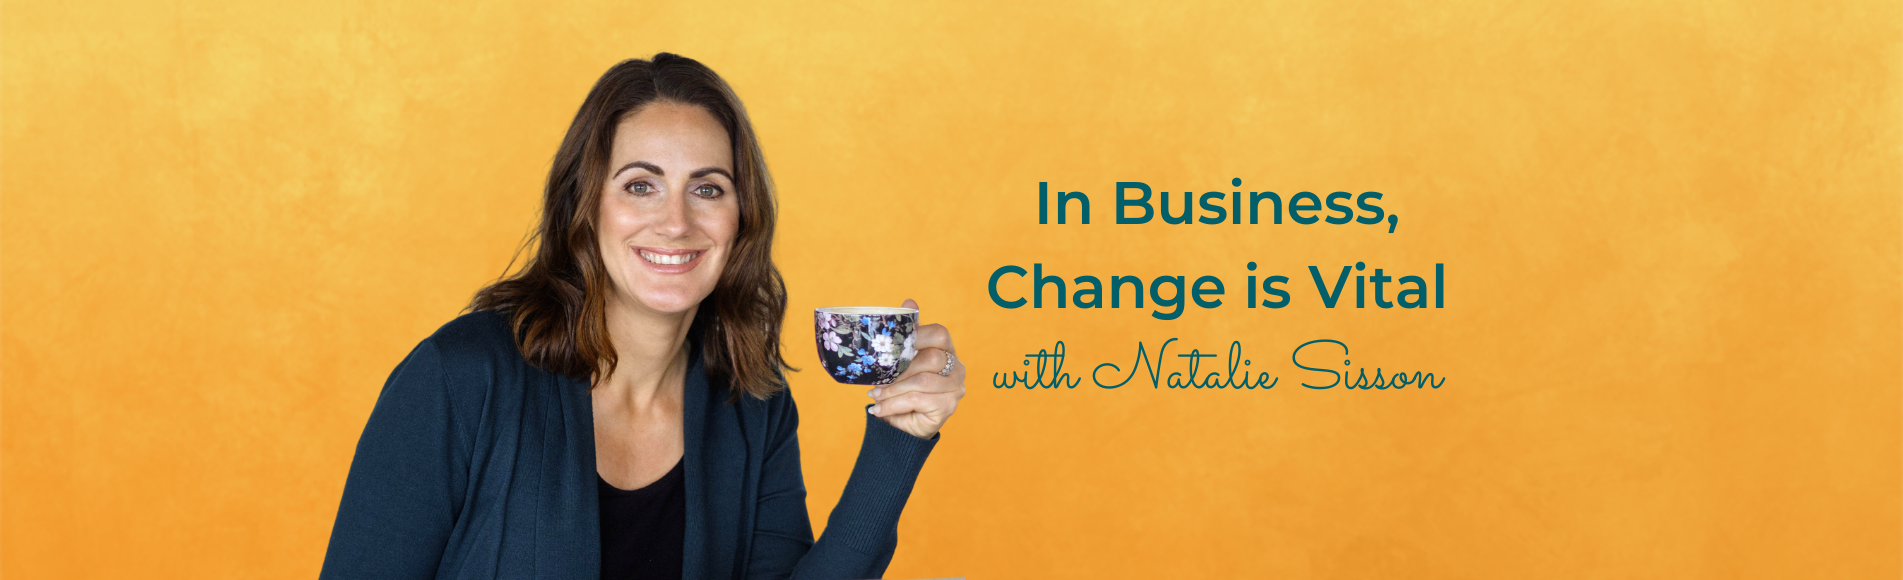 Eps 140: In Business, Change is Vital with an image of Natalie Sisson